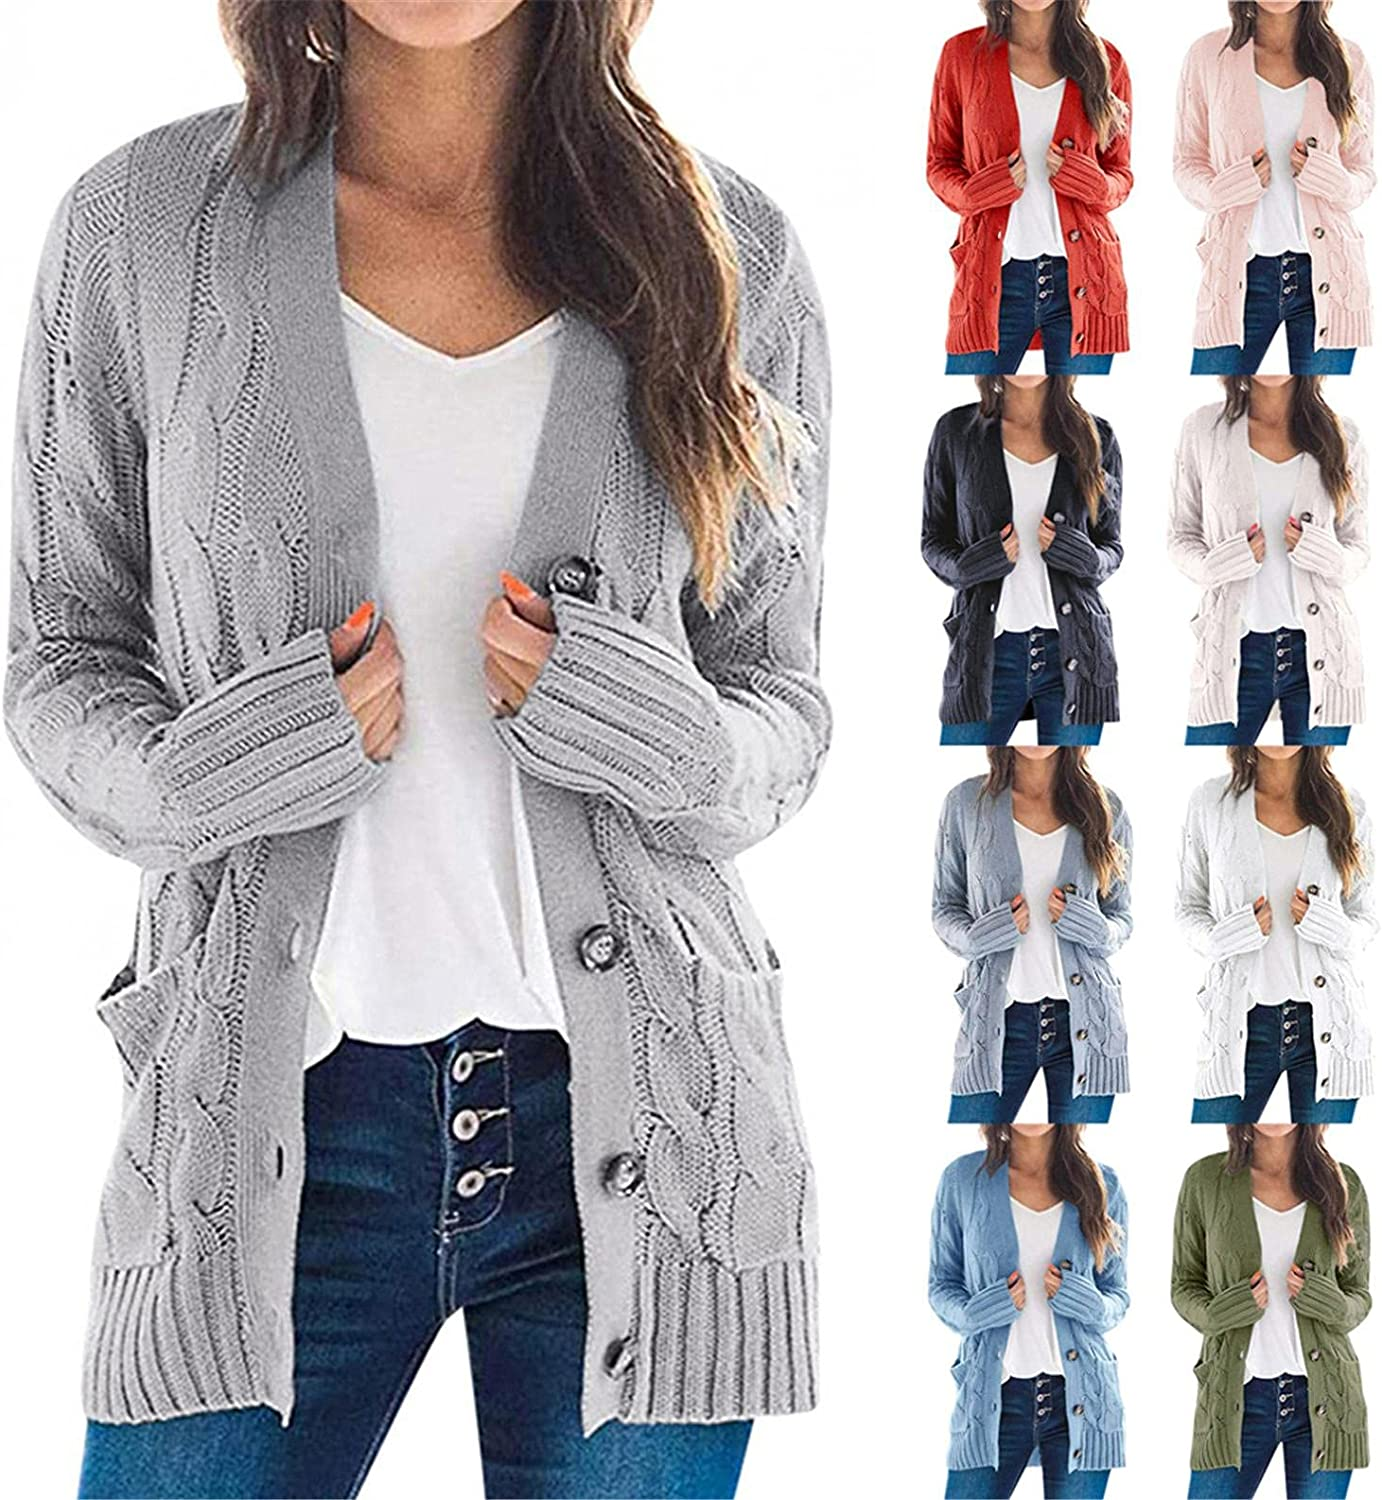 AODONG Cardigan for Women Loose Long Sleeve Cable Knitted Sweater Open Front Cardigan Fashion Button Outerwear